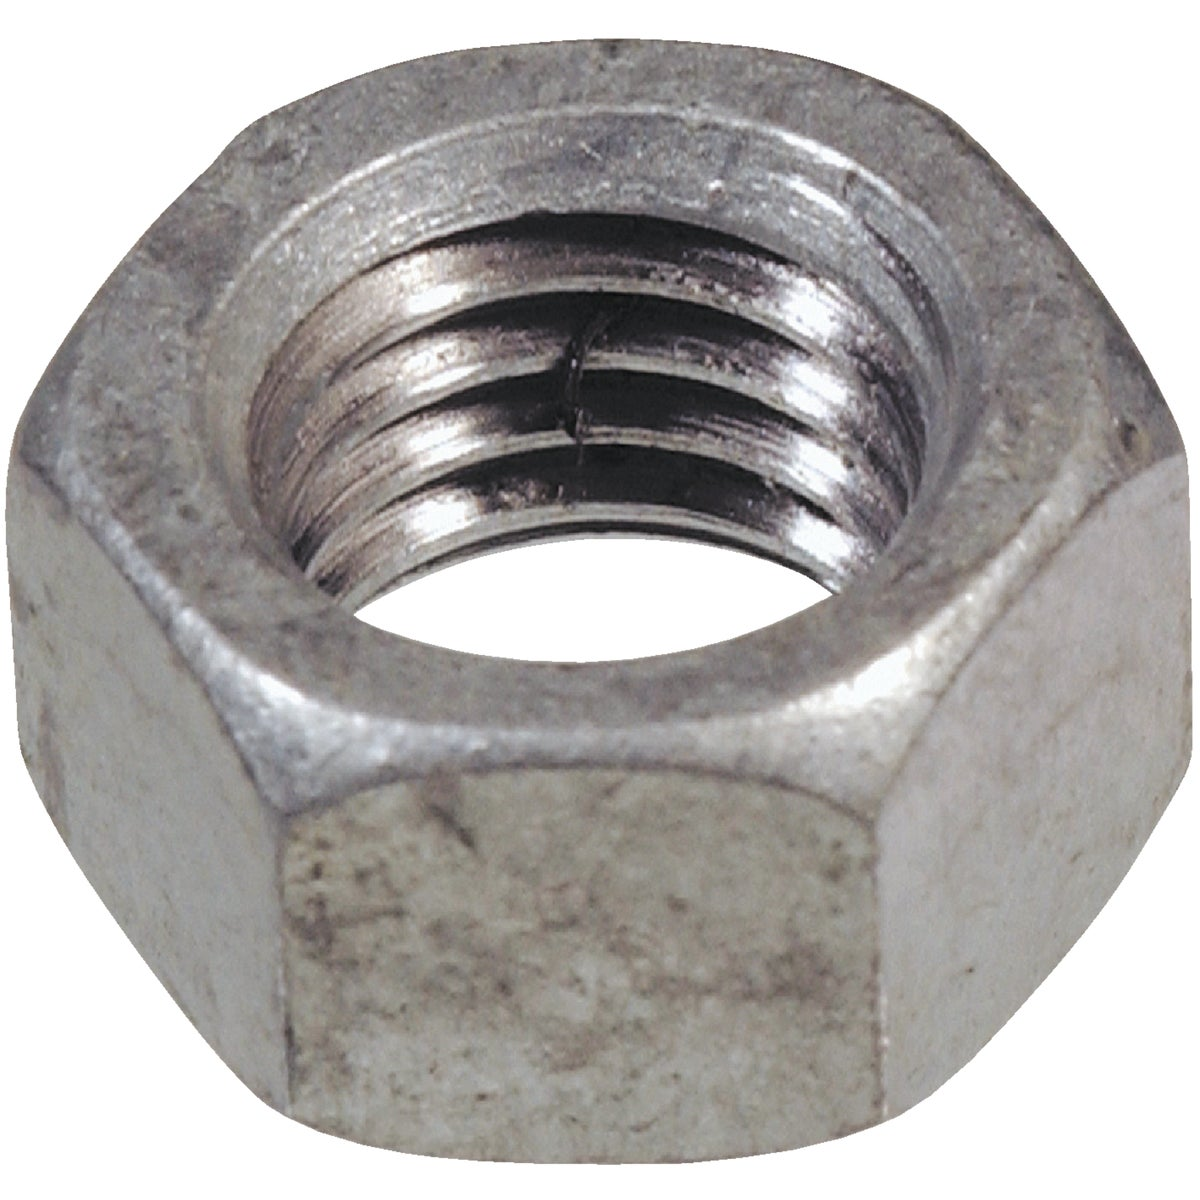 100PC 5/16-18 HEX NUT - 810506 by Hillman Fastener